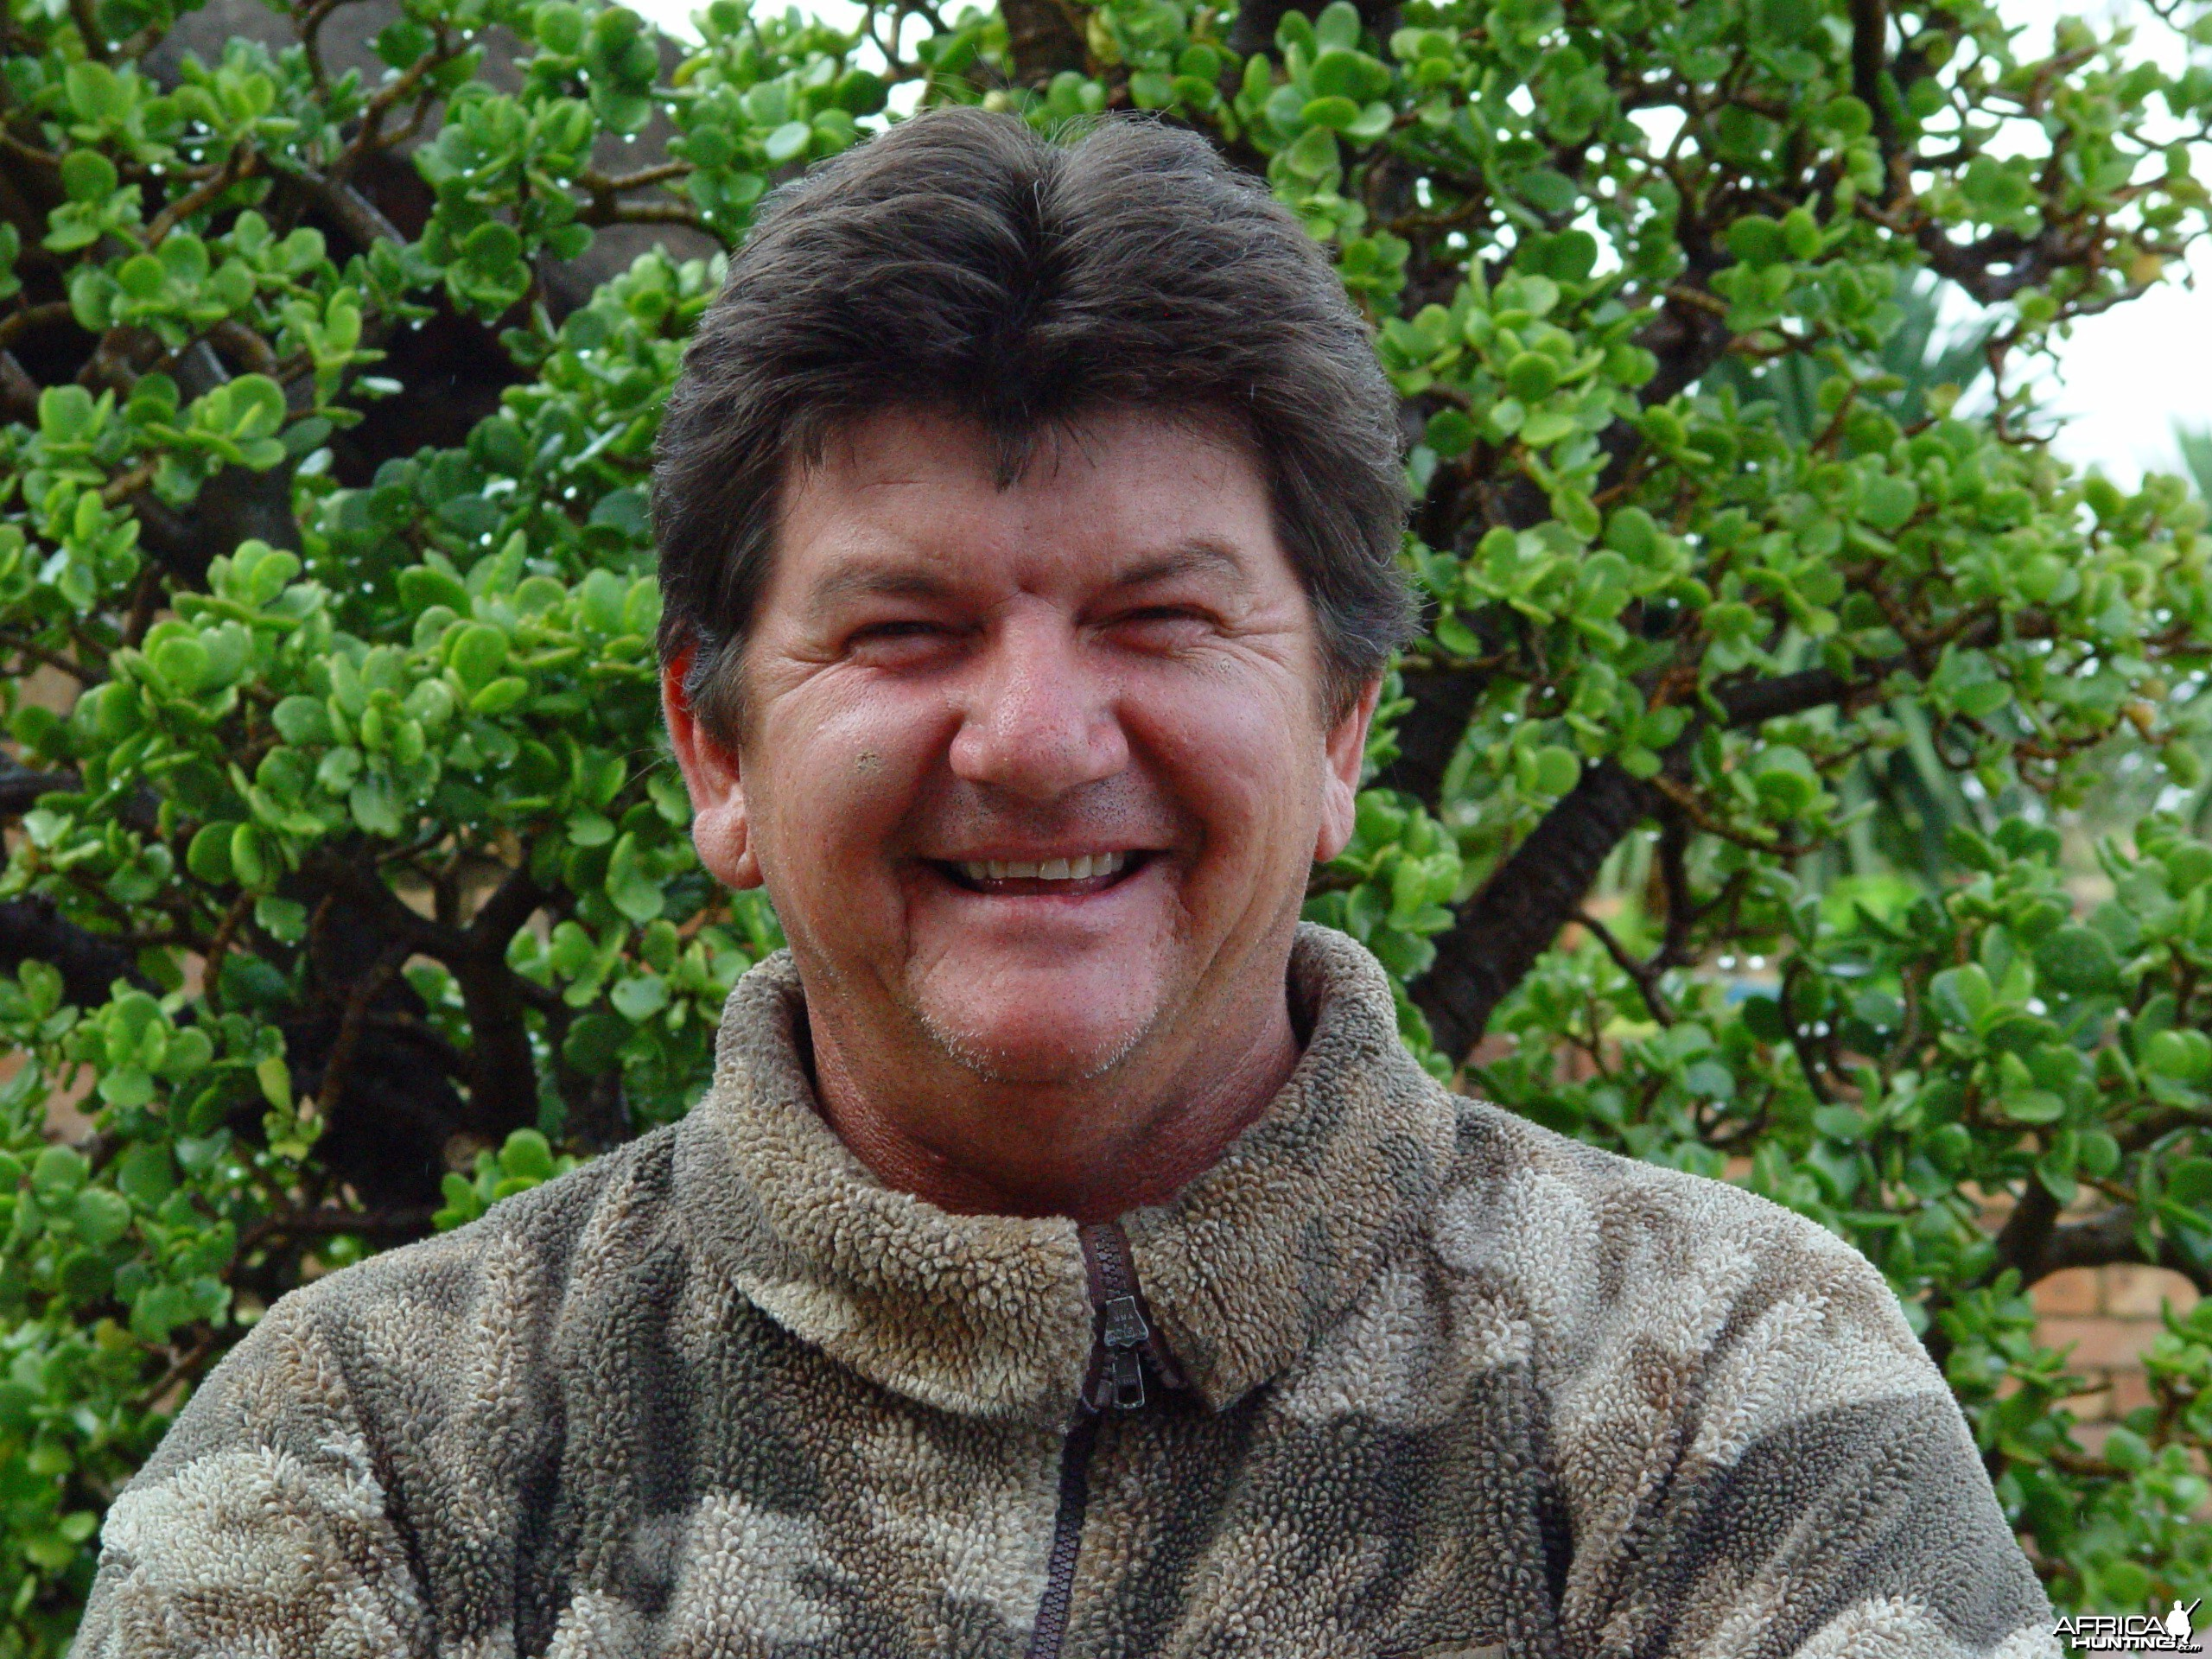 PH Johnny Vivier with Wintershoek Johnny Vivier Safaris in South Africa